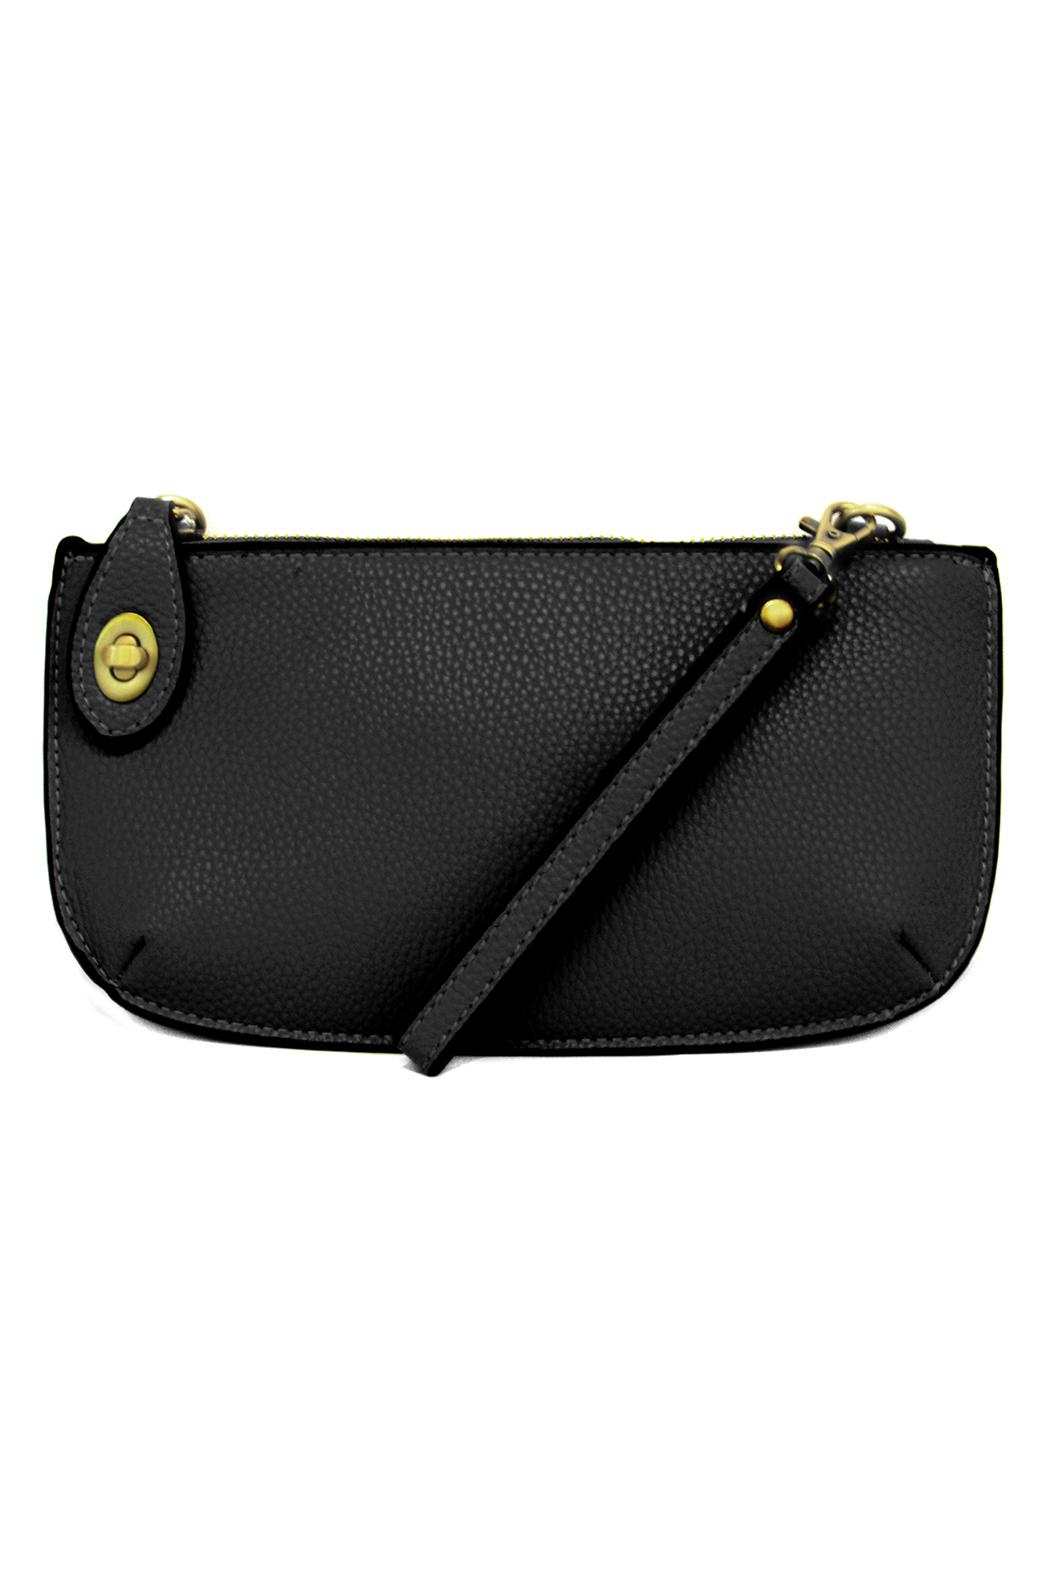 Joy Susan Accessories Crossbody Wristlet Clutch - Front Cropped Image